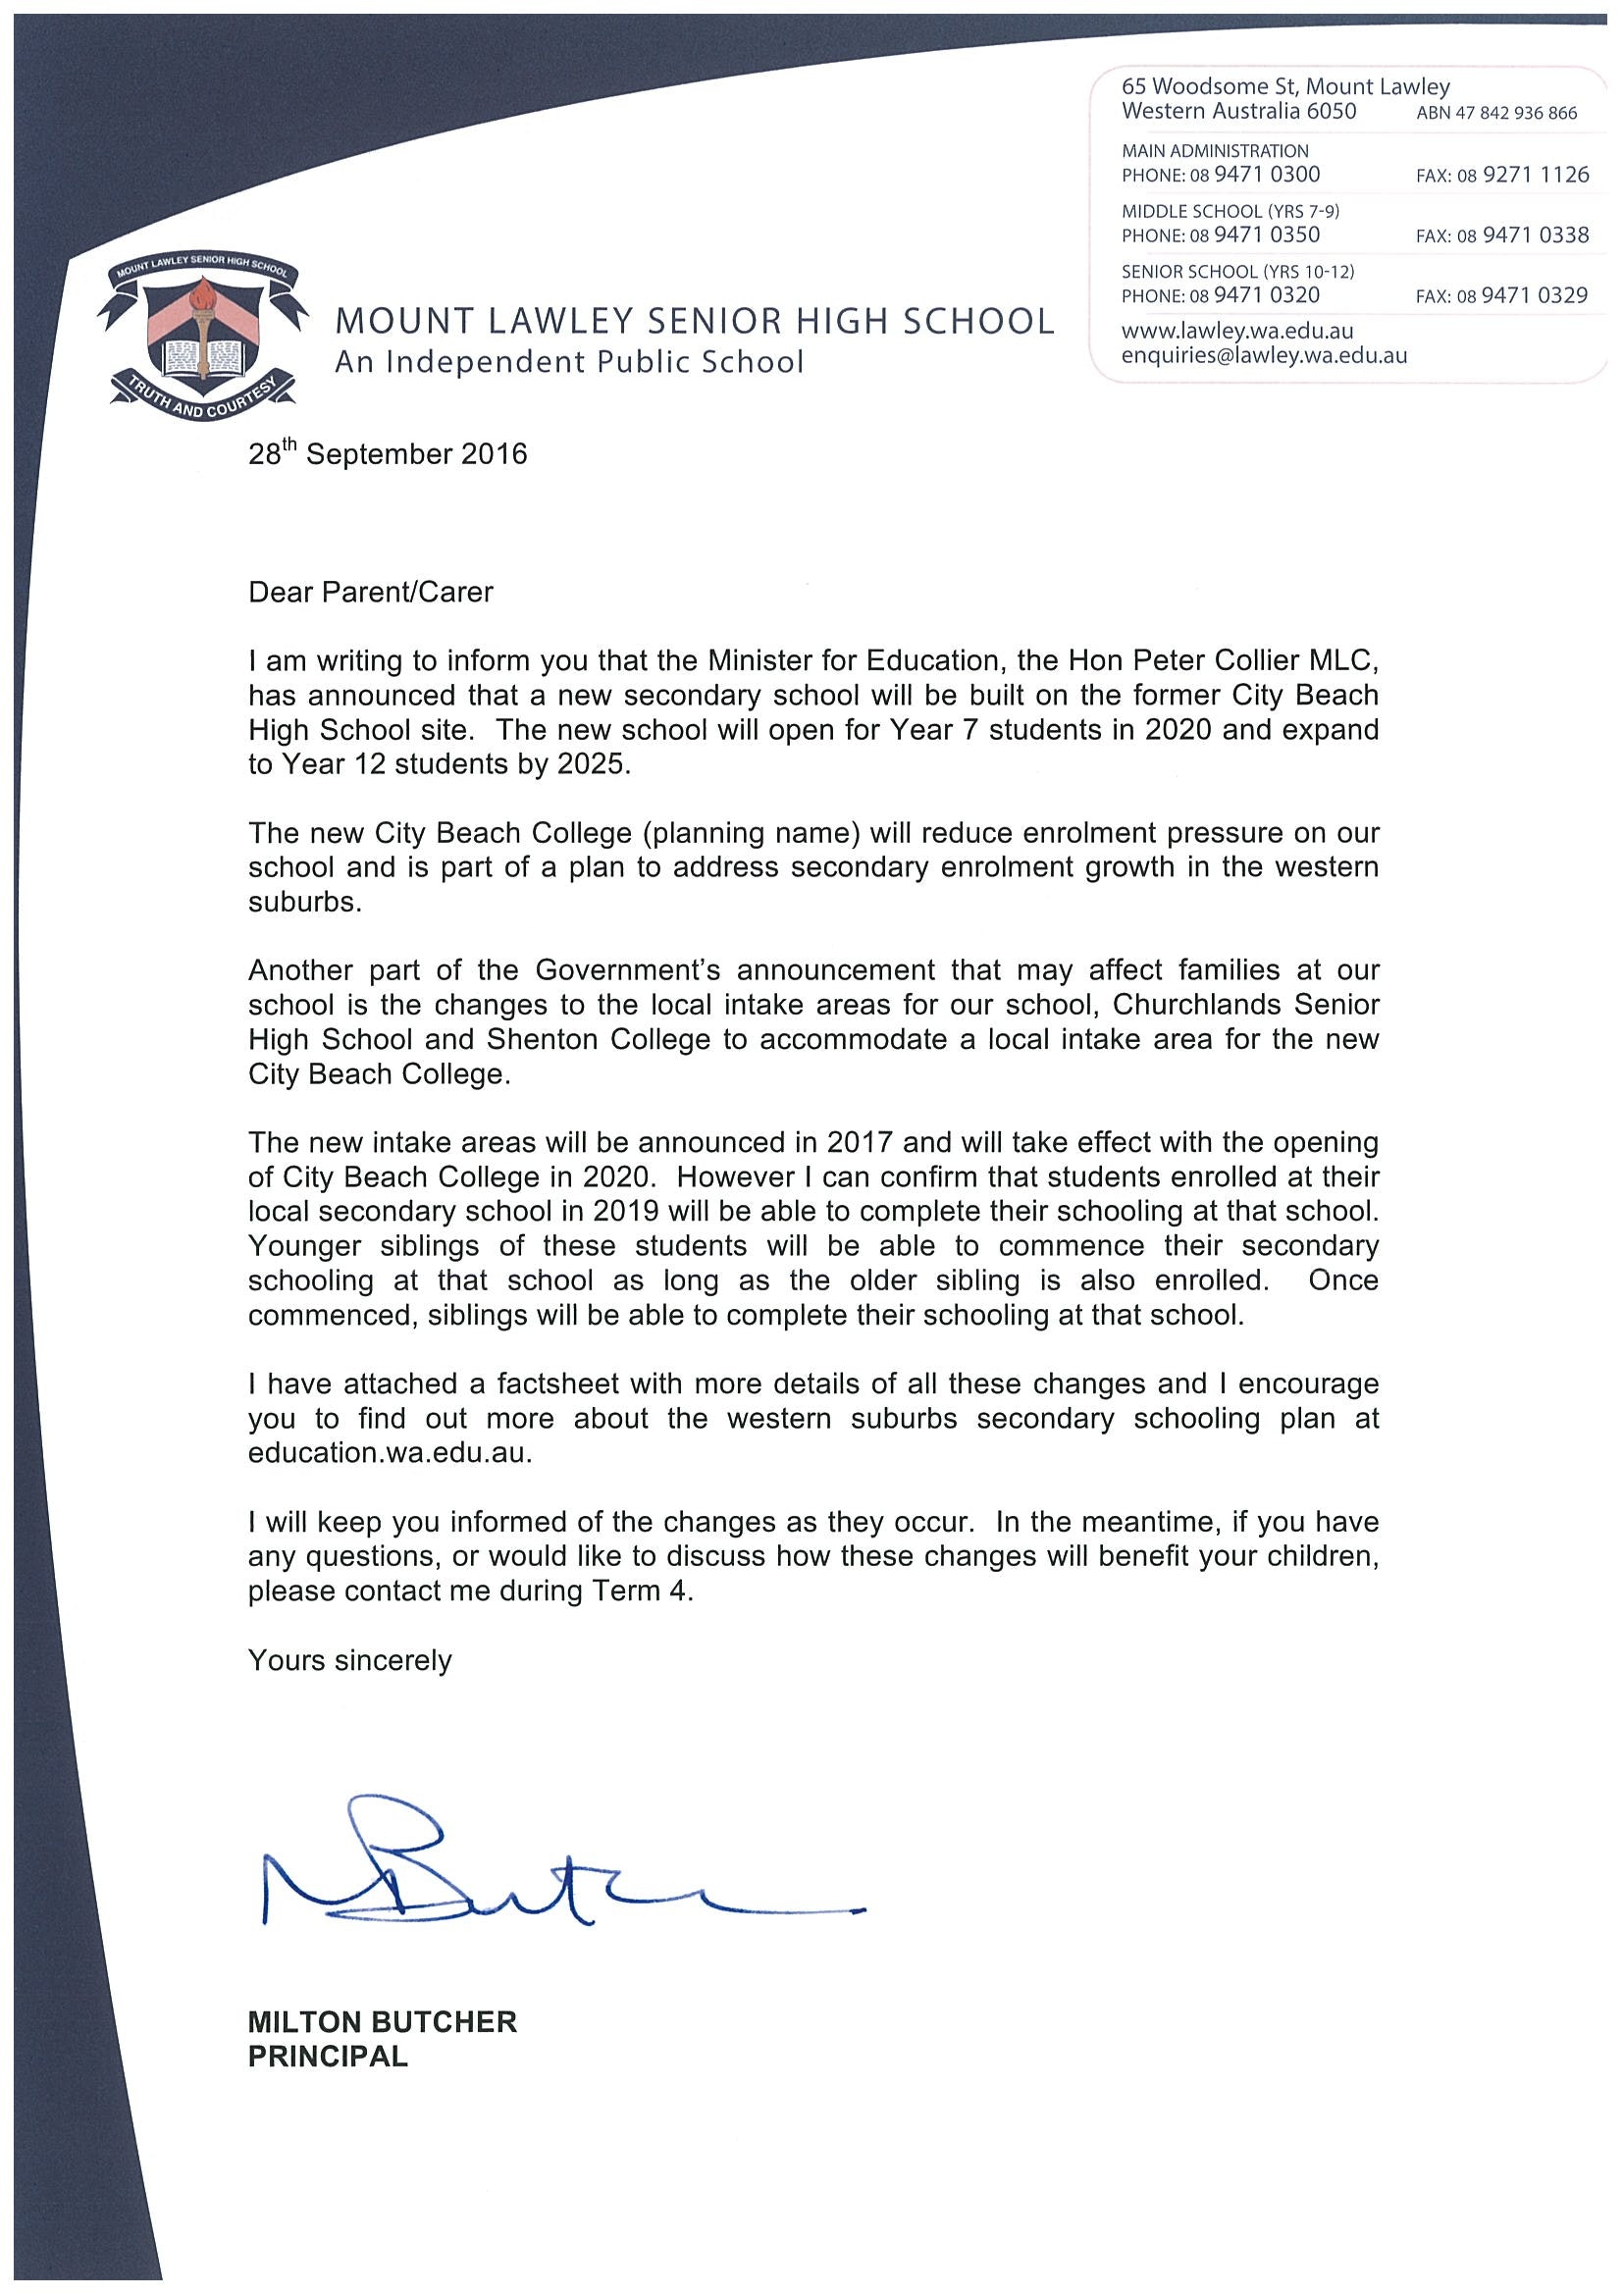 western-suburbs-mount-lawley-senior-high-school-letter-to-parents.jpg